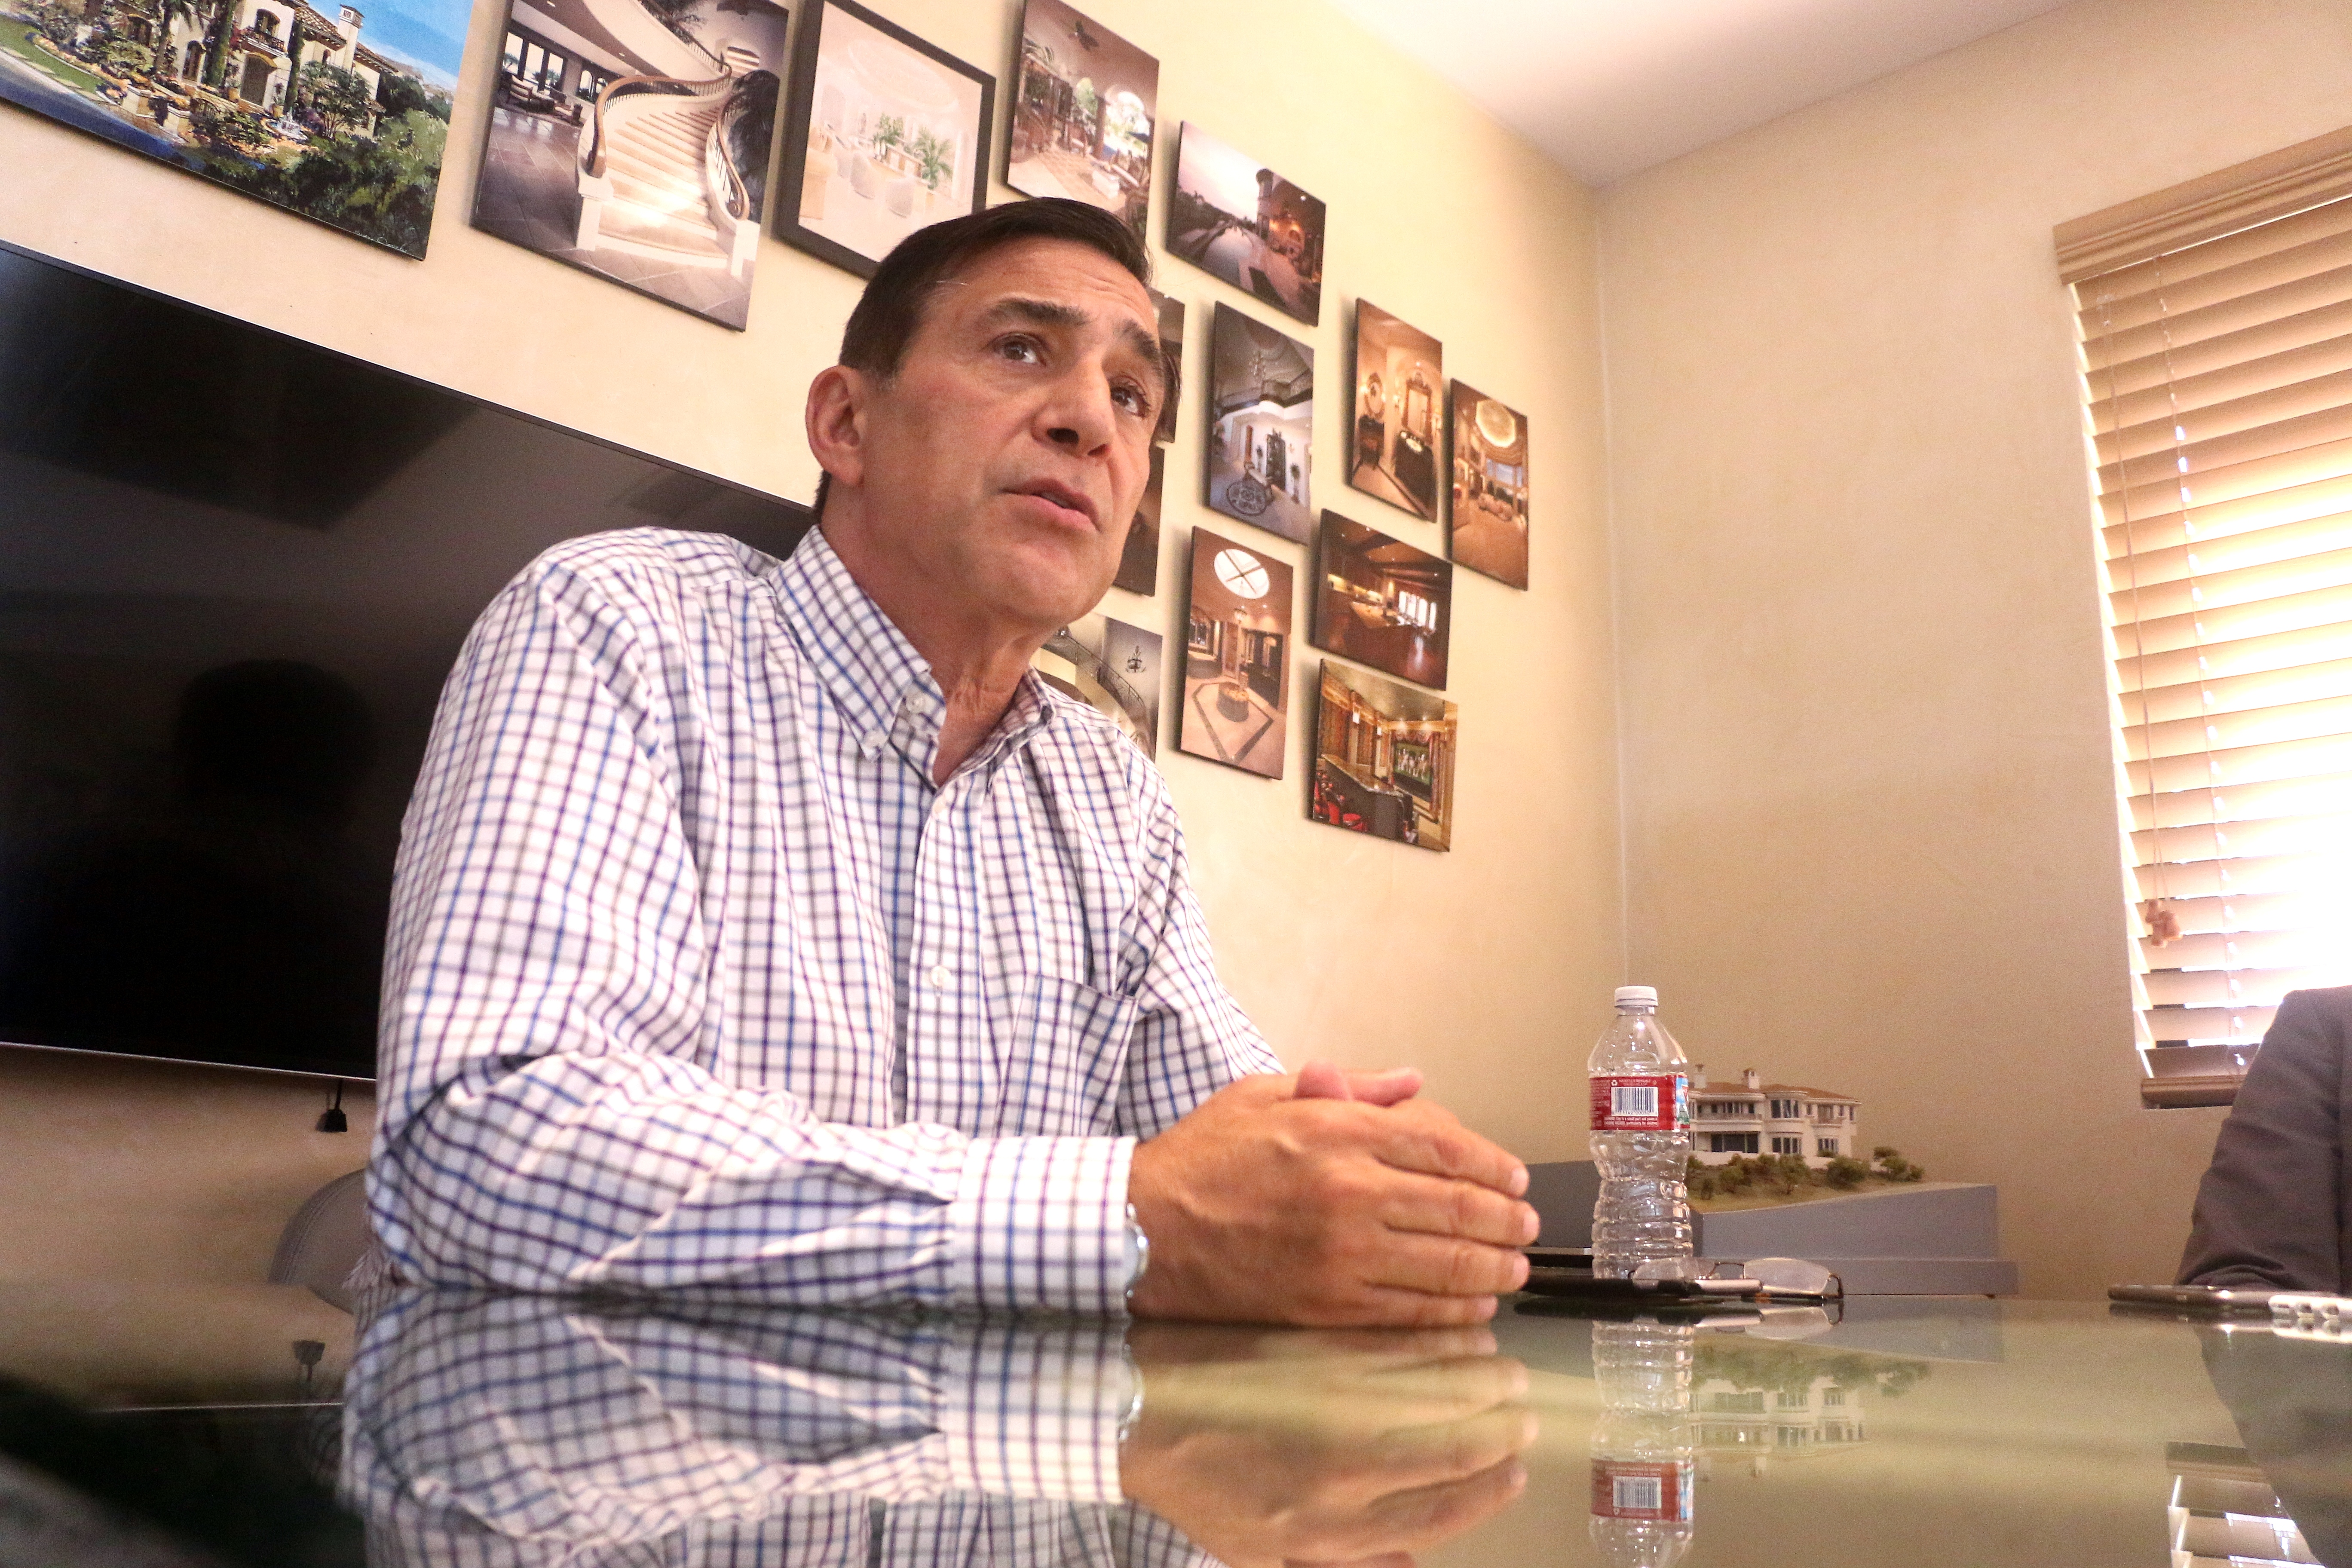 U.S. Congressman Darrell Issa responds to questions from the Picket Fence Media, owner of the San Clemente Times, editorial staff on Aug. 22. Photo: Eric Heinz